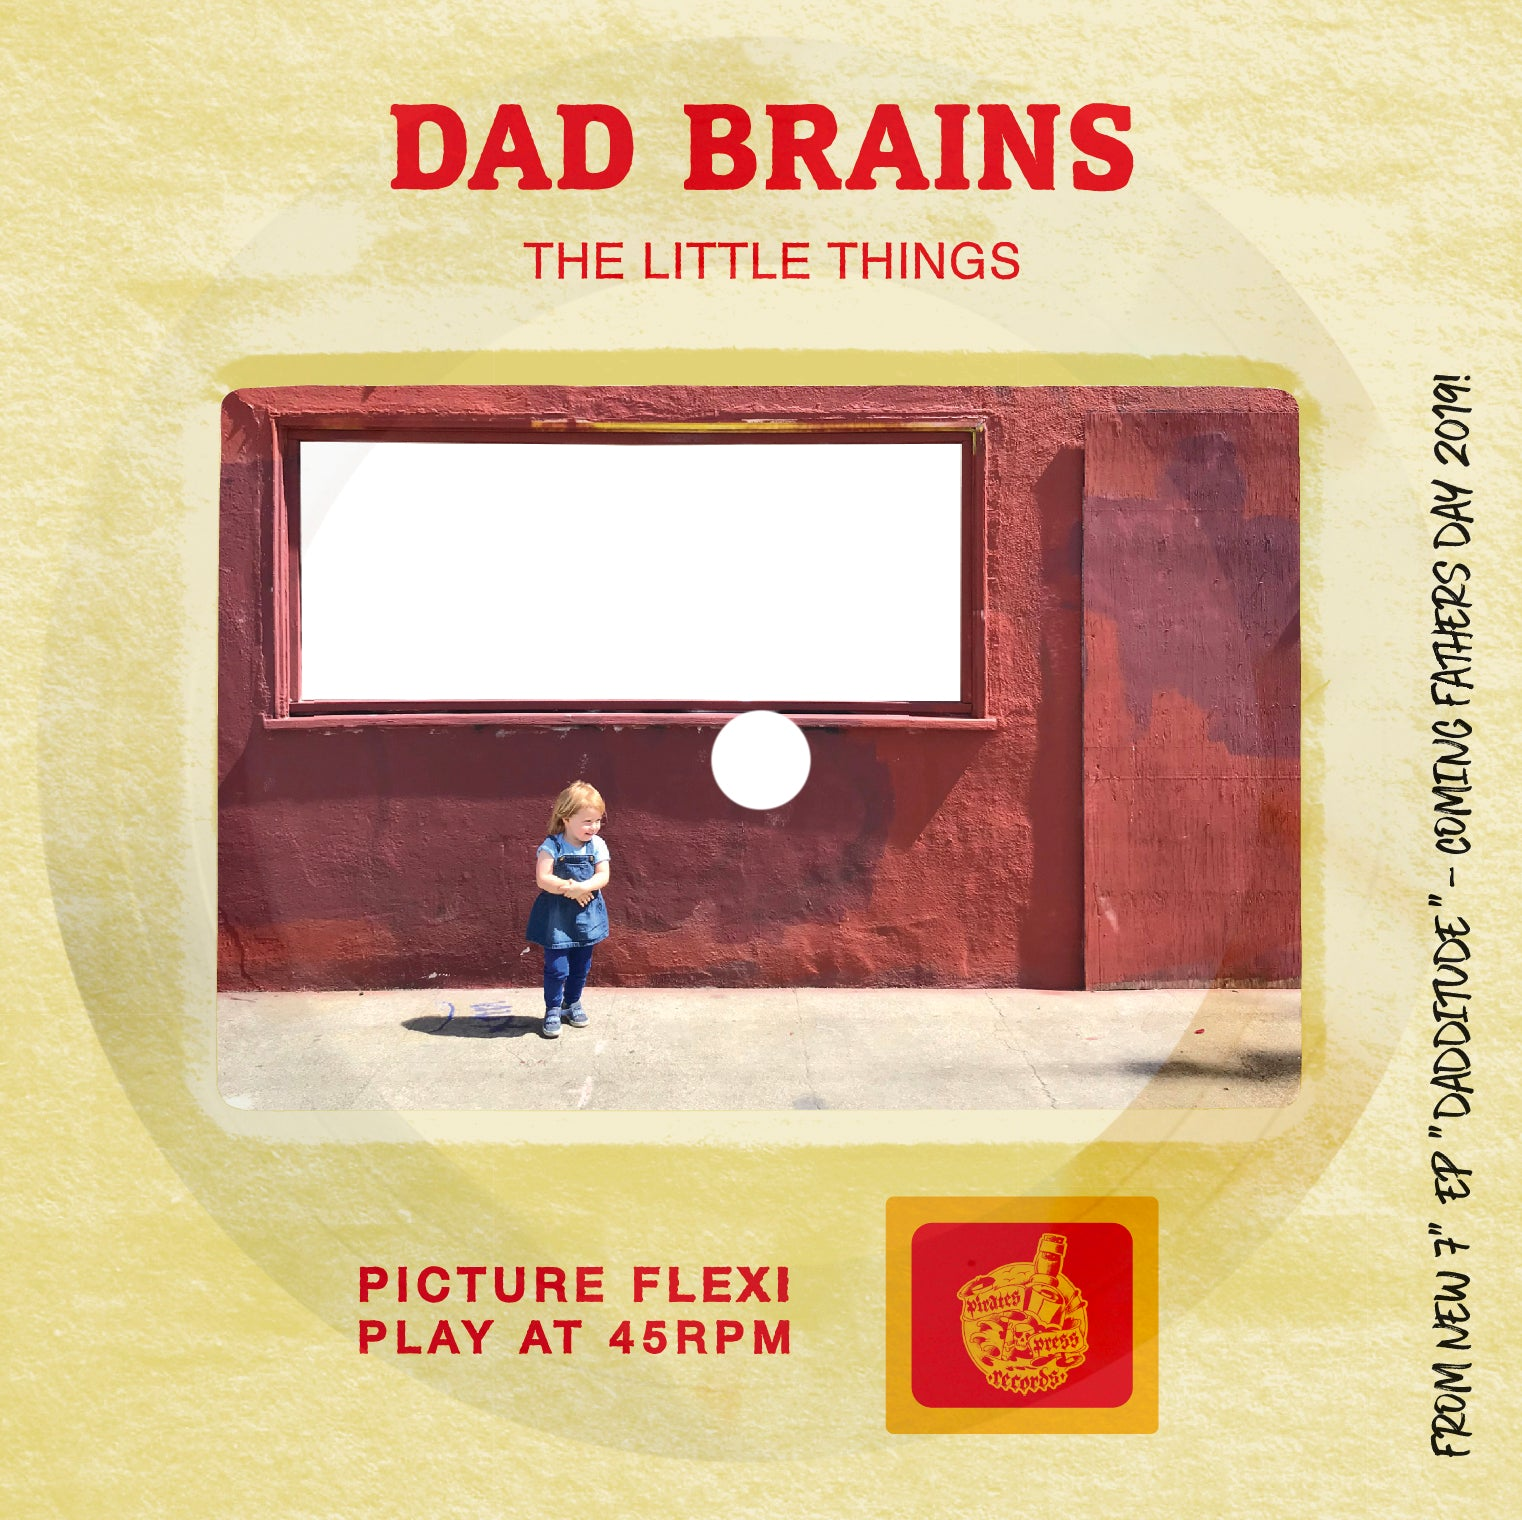 Dad Brains - Little Things Flexi